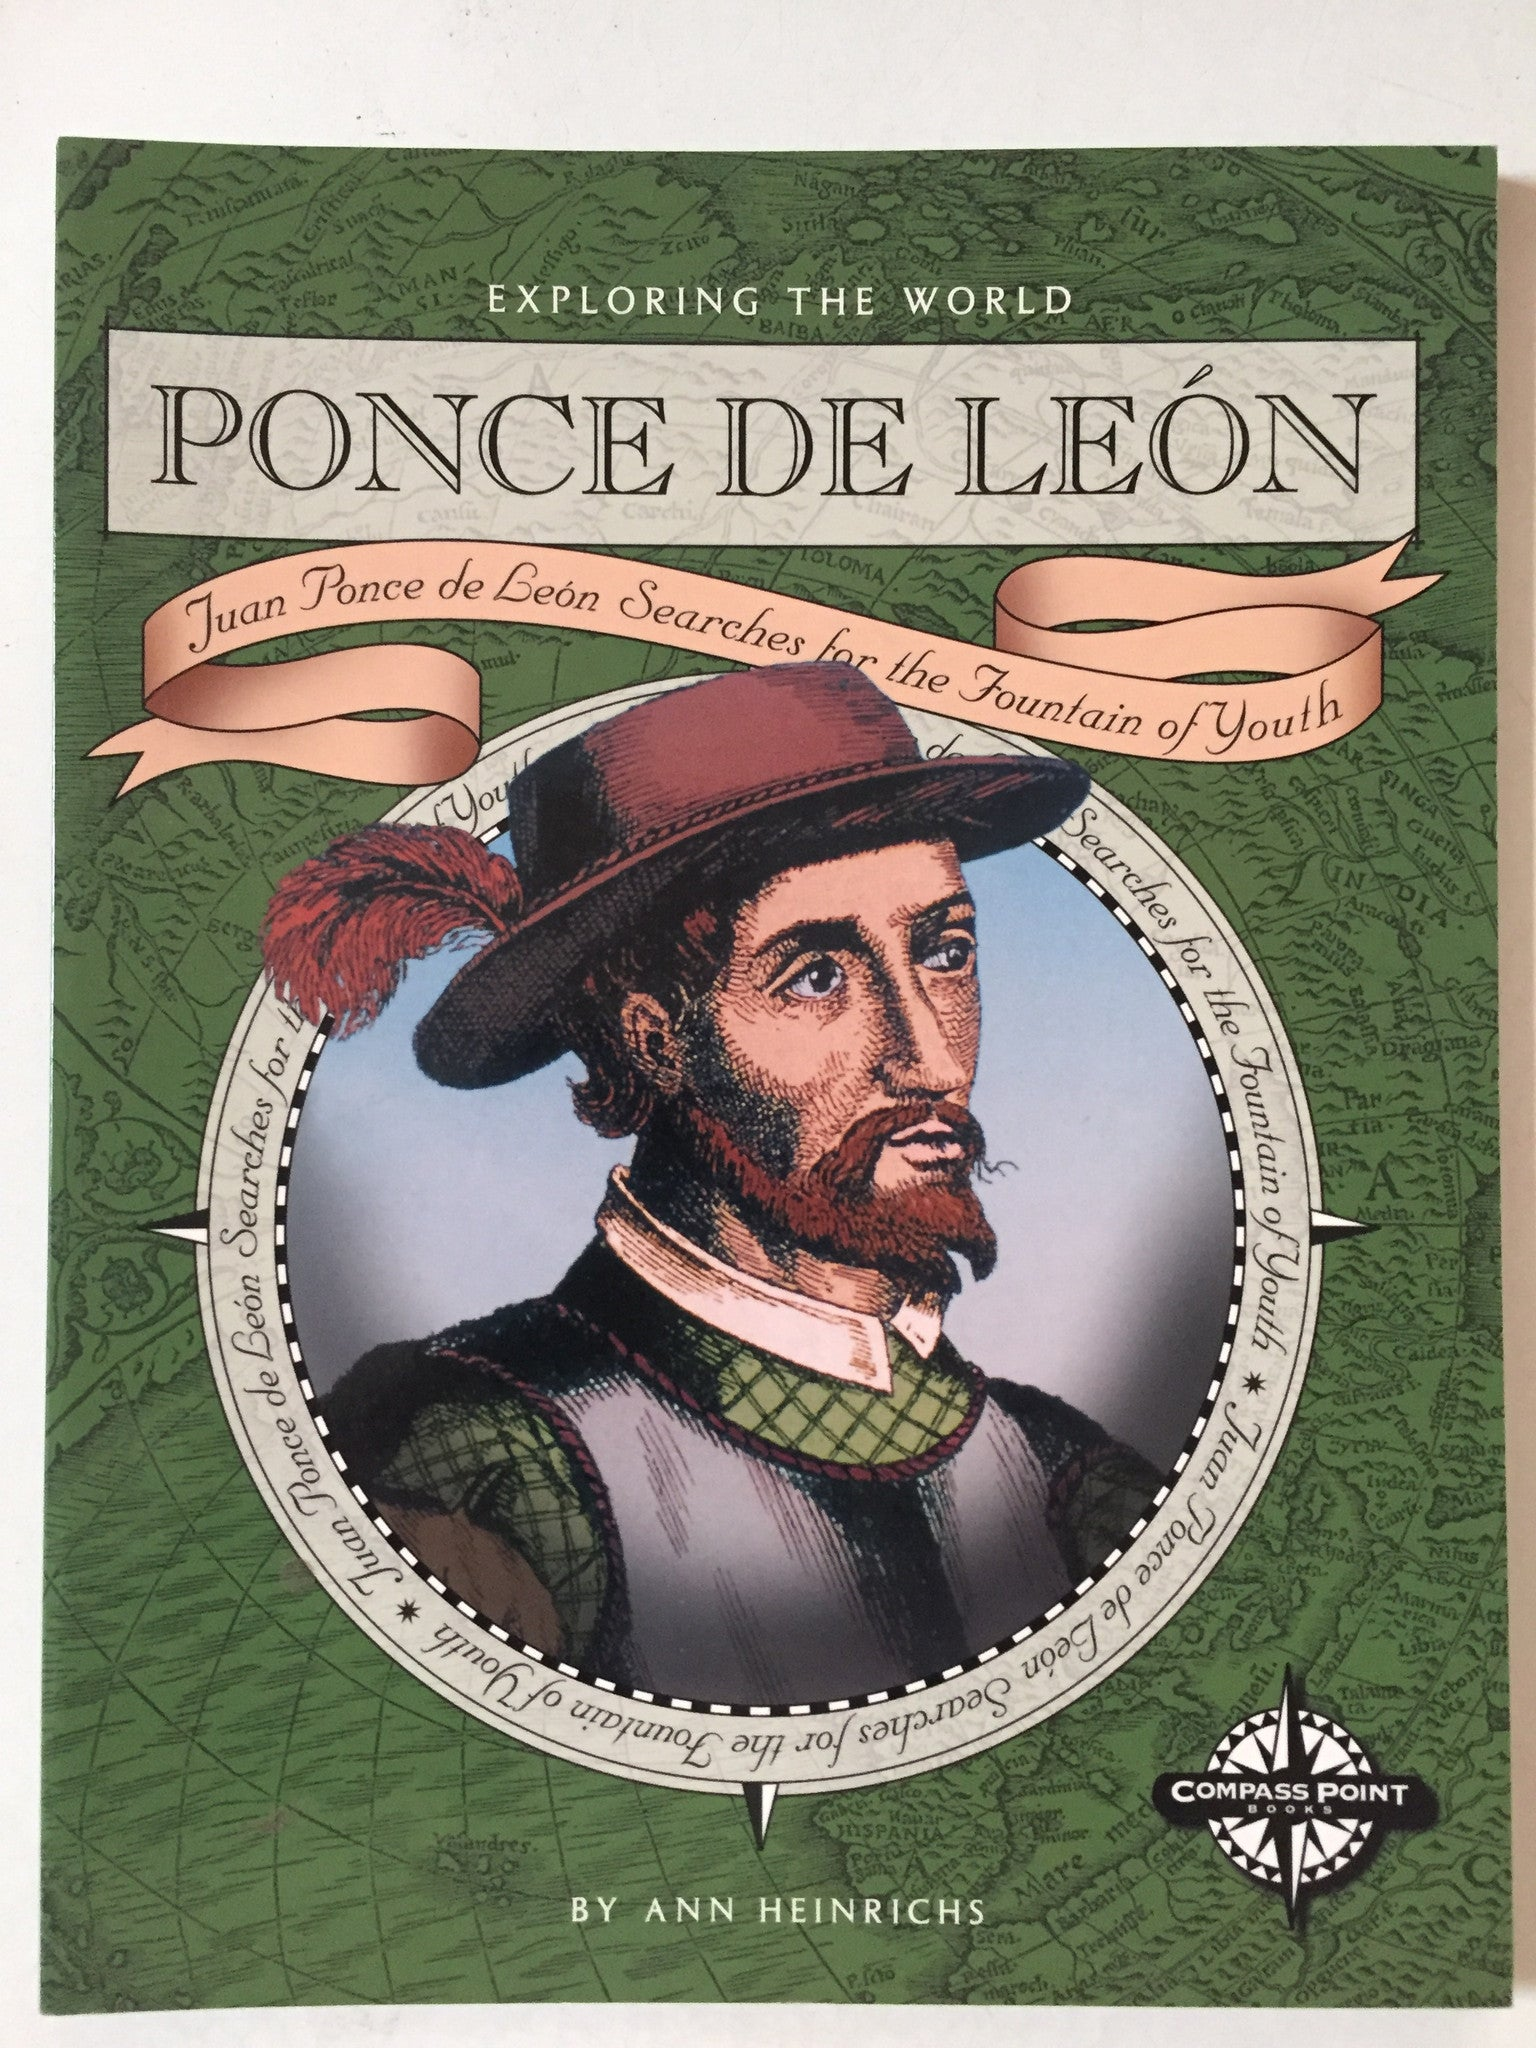 Ponce de Leon: Juan Ponce de Leon Searches for the Fountain of Youth - Slickcatbooks